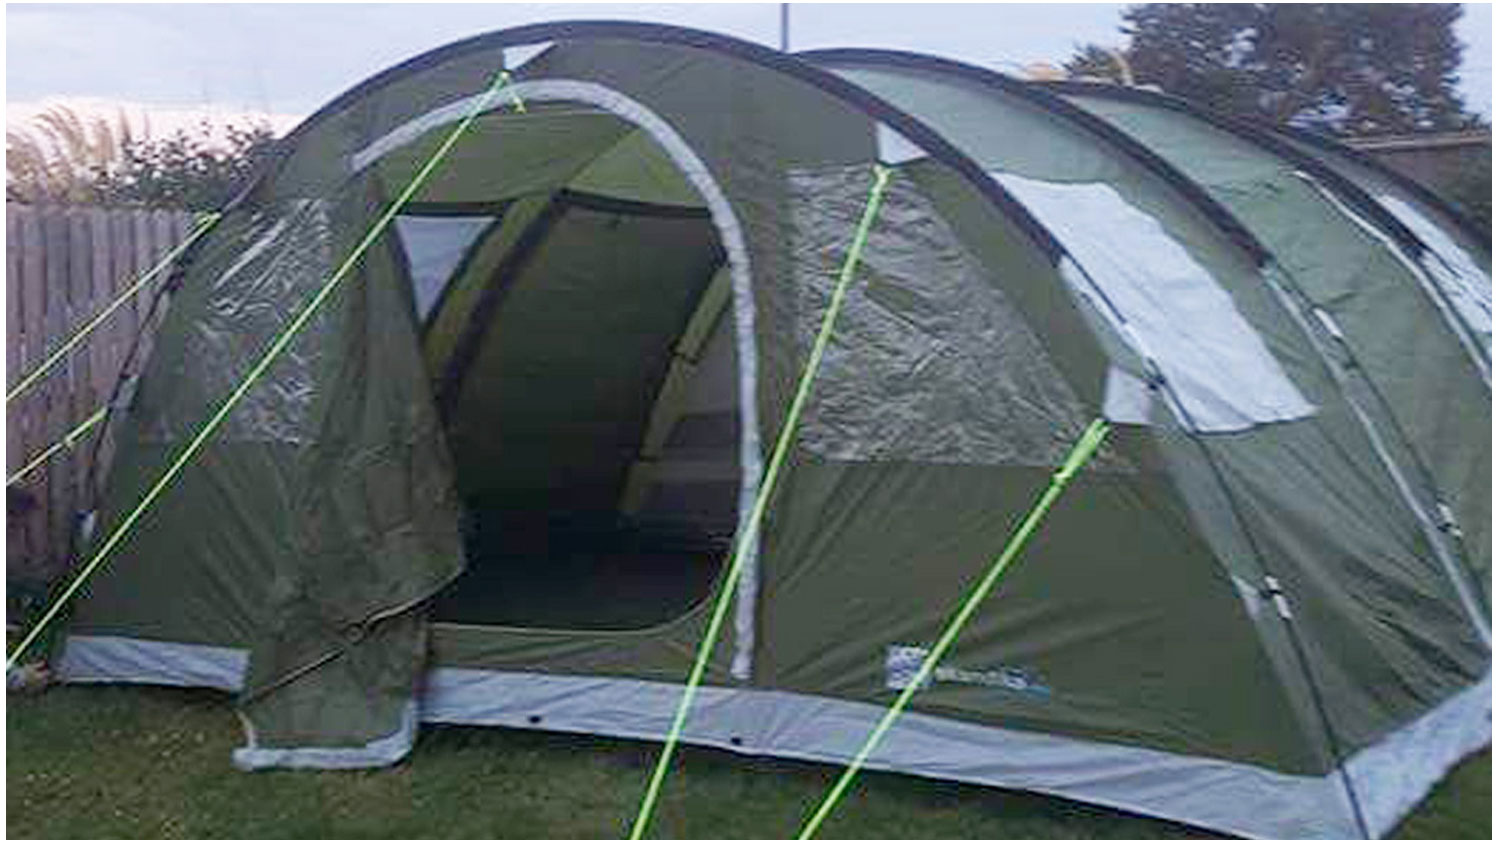 Tent_1-Camping-Campervans-Motorhomes-Lynders-Mobile-Home-Park-PortraneDonabate-North-County-Dublin-Fingal